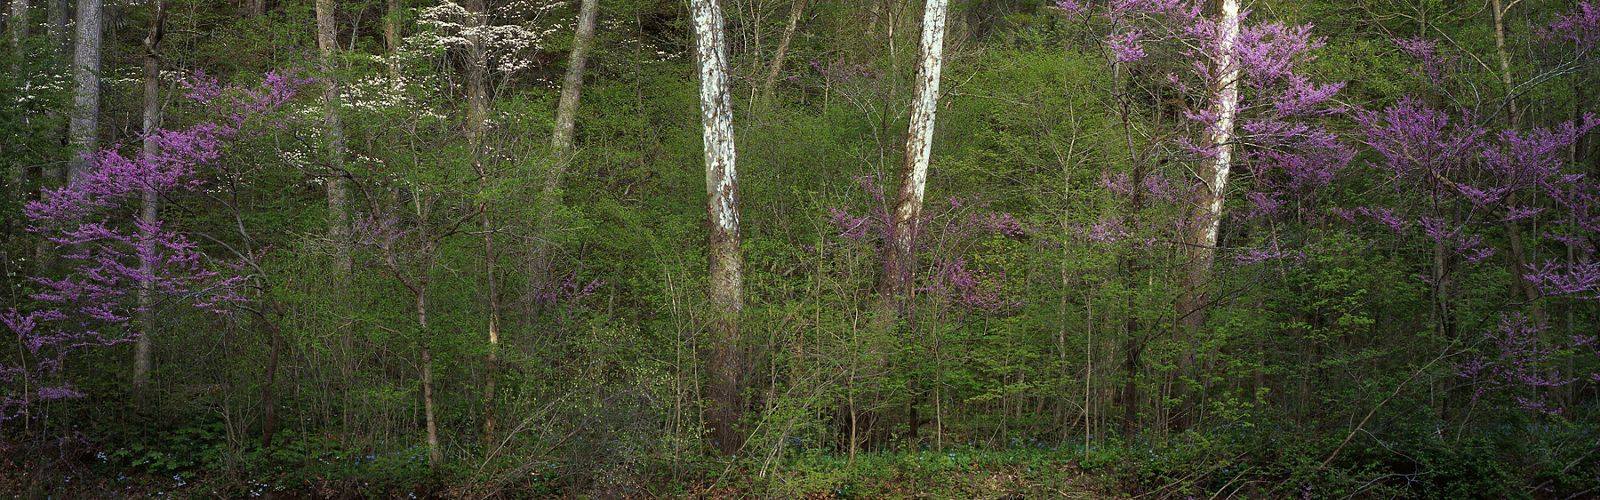 Redbuds, dogwoods and sycamore trees create a spring mosaic of color in Big Walnut Nature Preserve, central Indiana